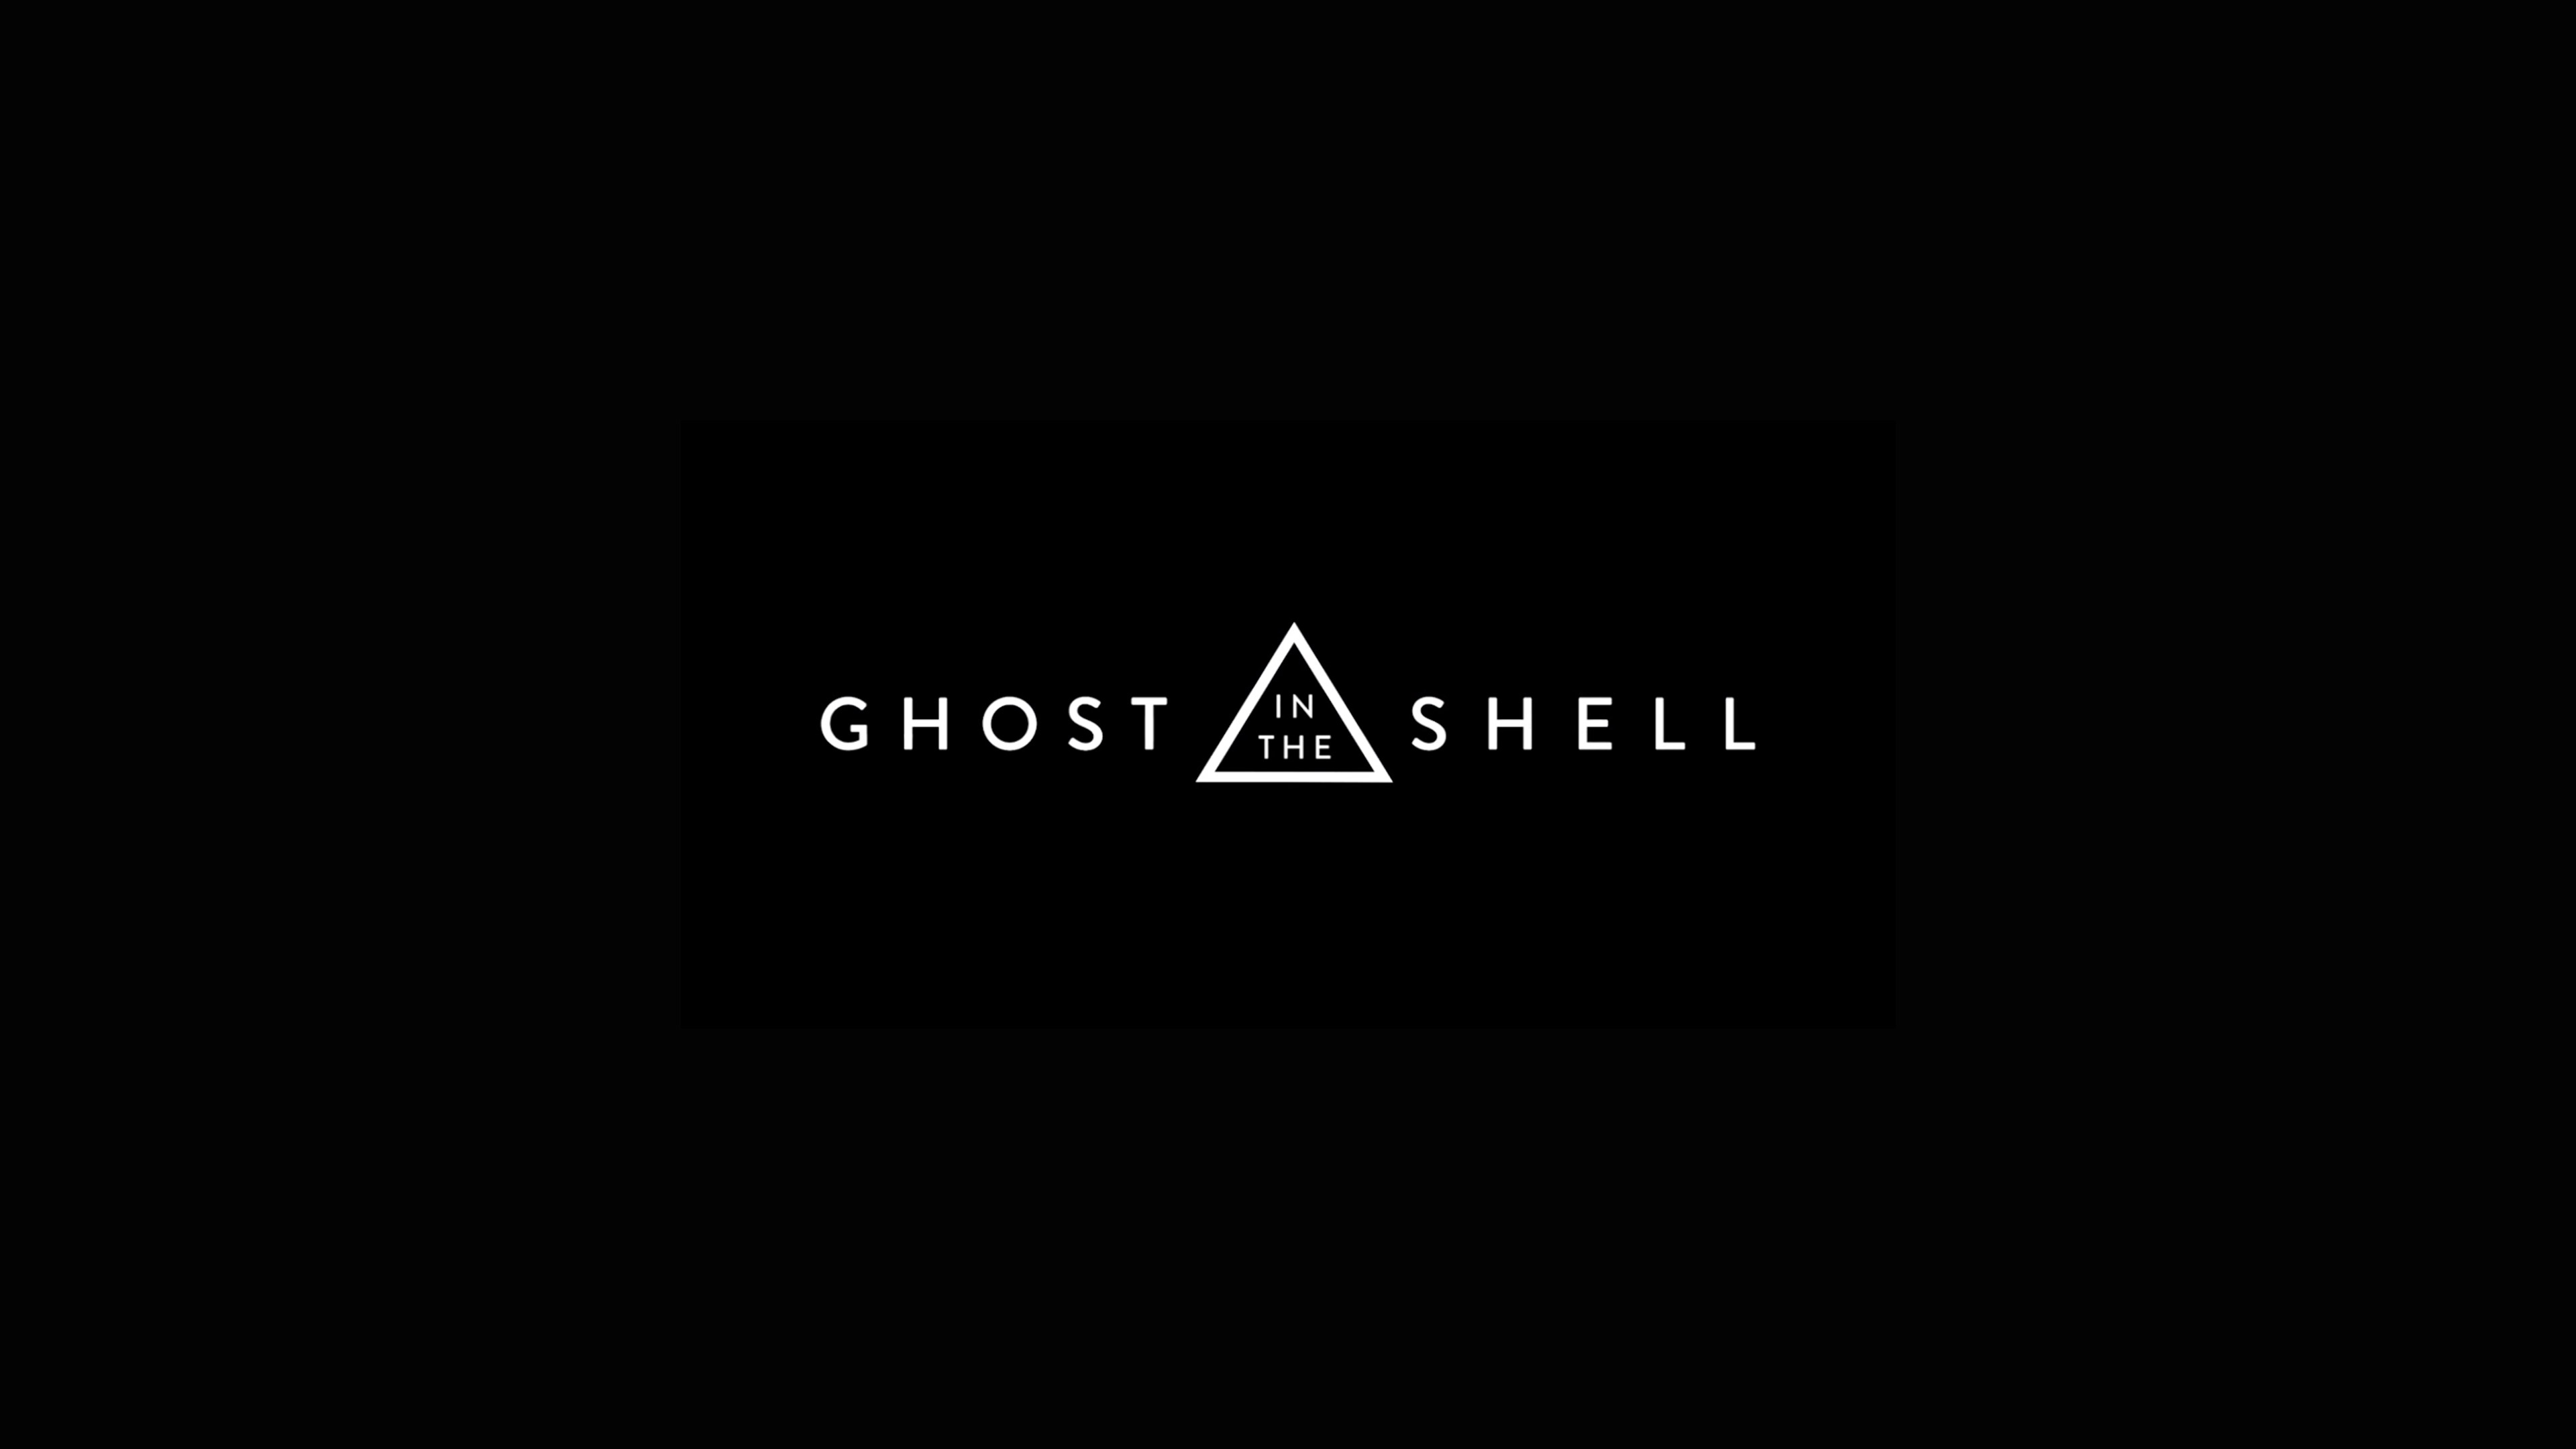 Ghost In The Shell Movie Logo, HD Movies, 4k Wallpapers